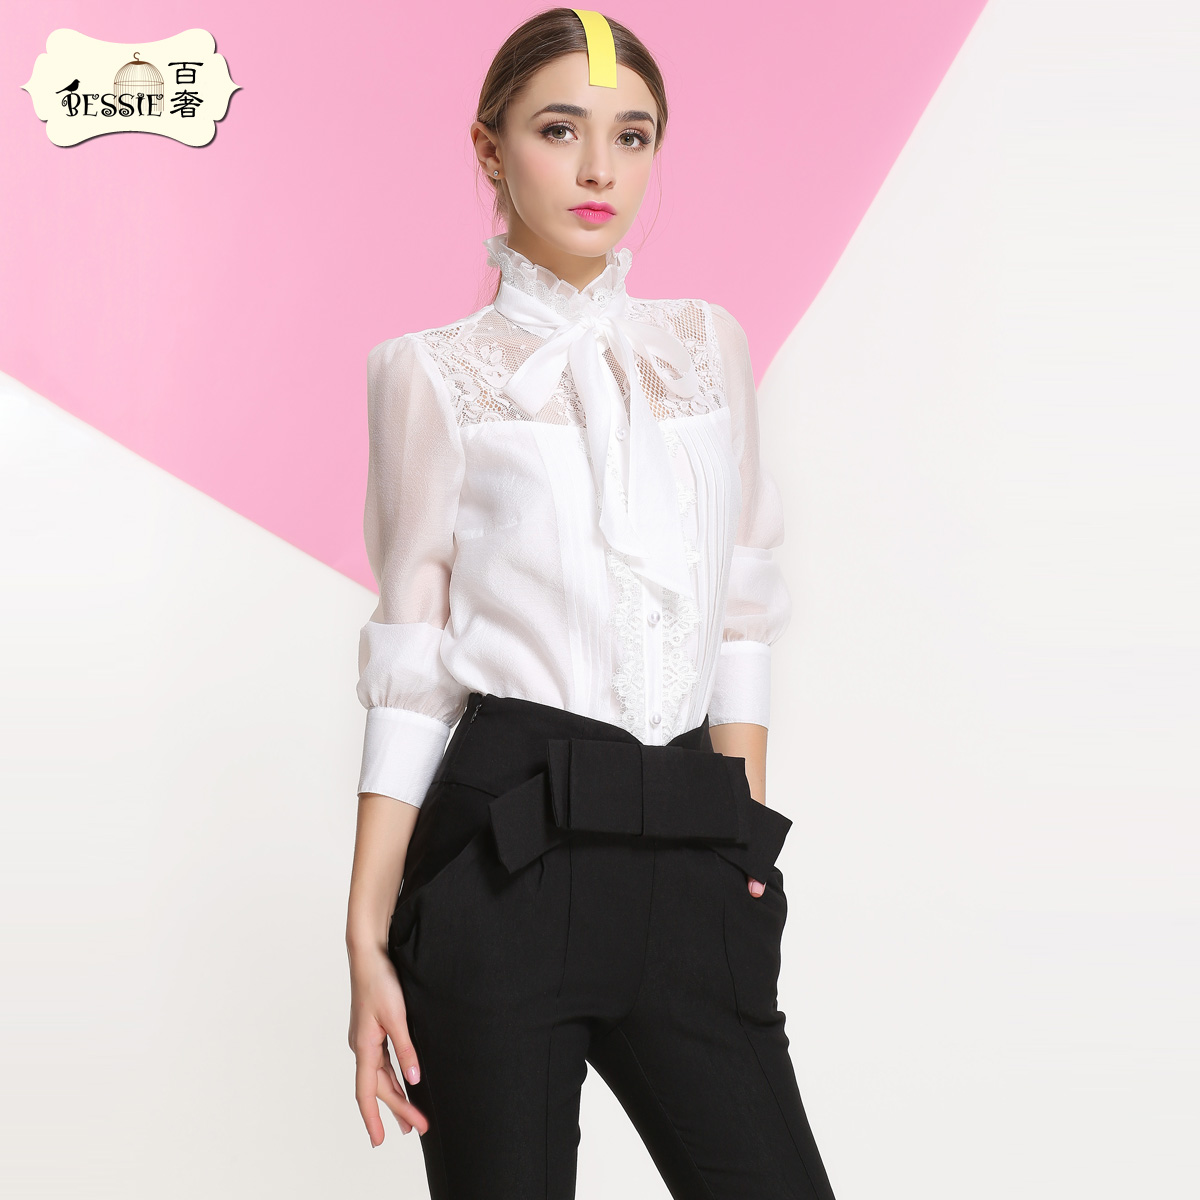 Bessie 2016 new spring and summer long sleeve lace shirt korean version of sweet luxury bow chiffon shirt female